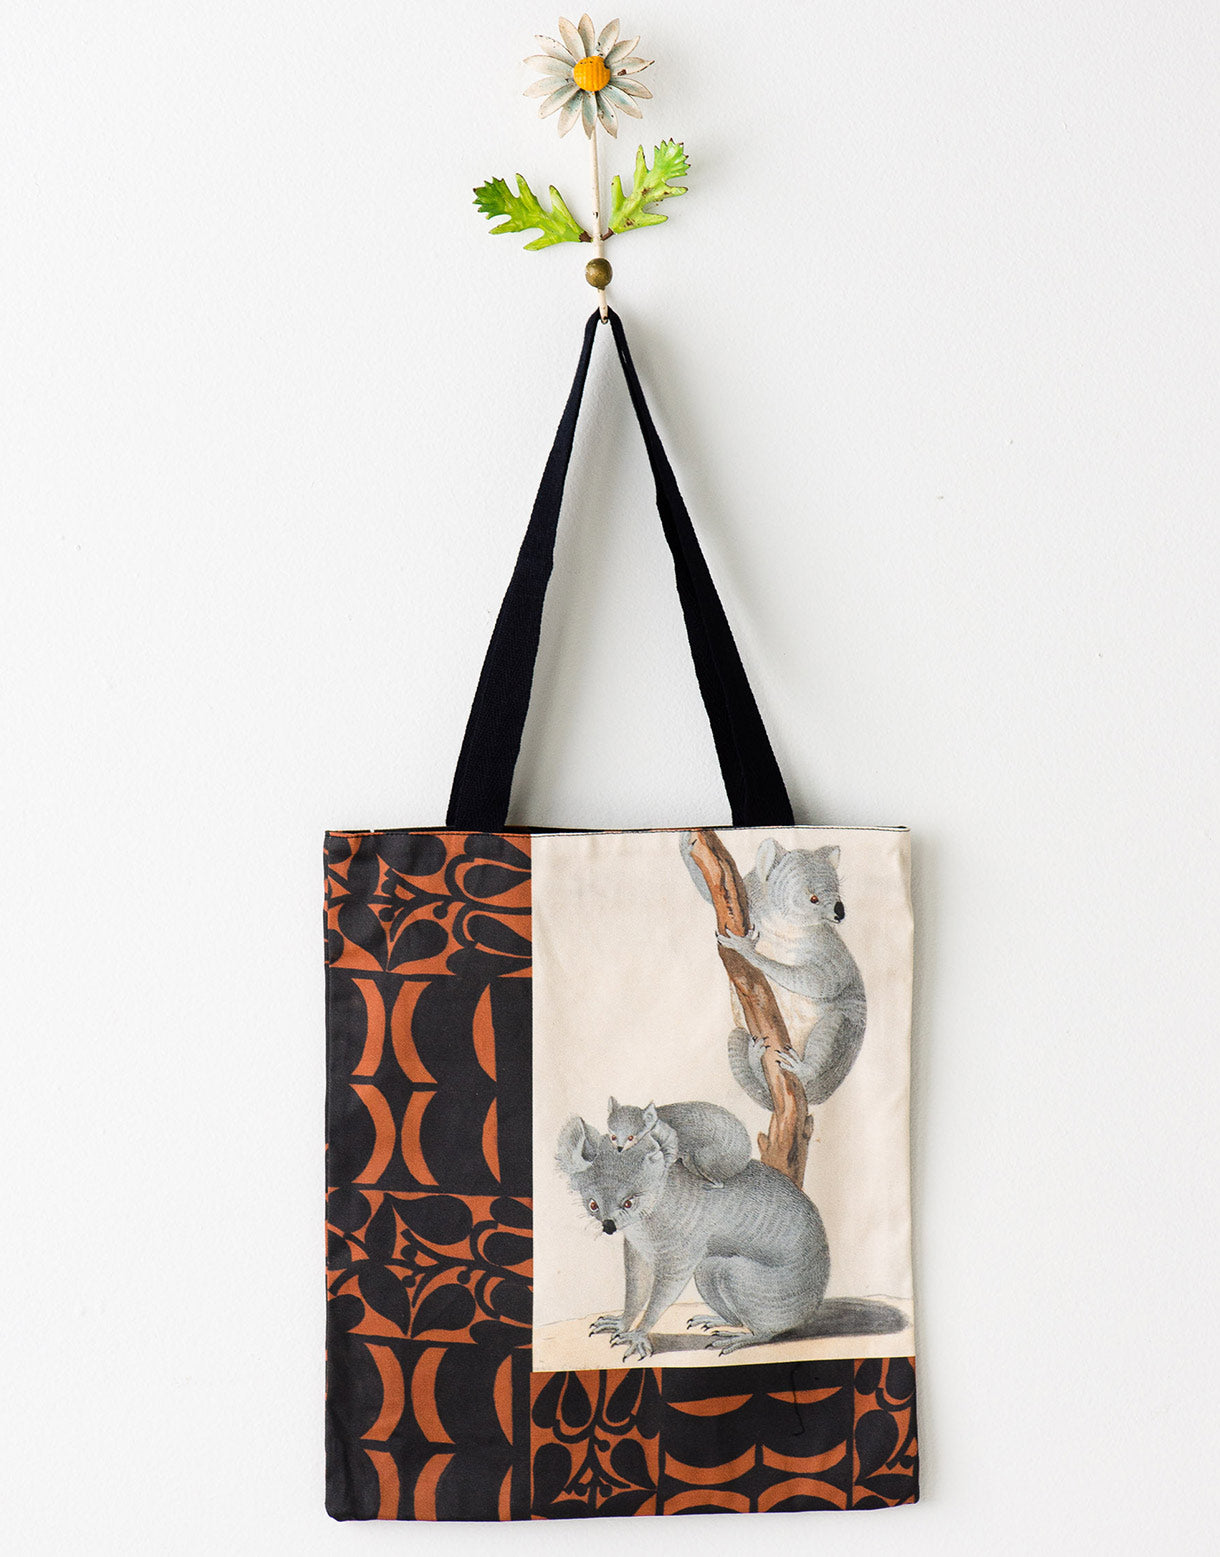 Koala tote bag large *organic cotton